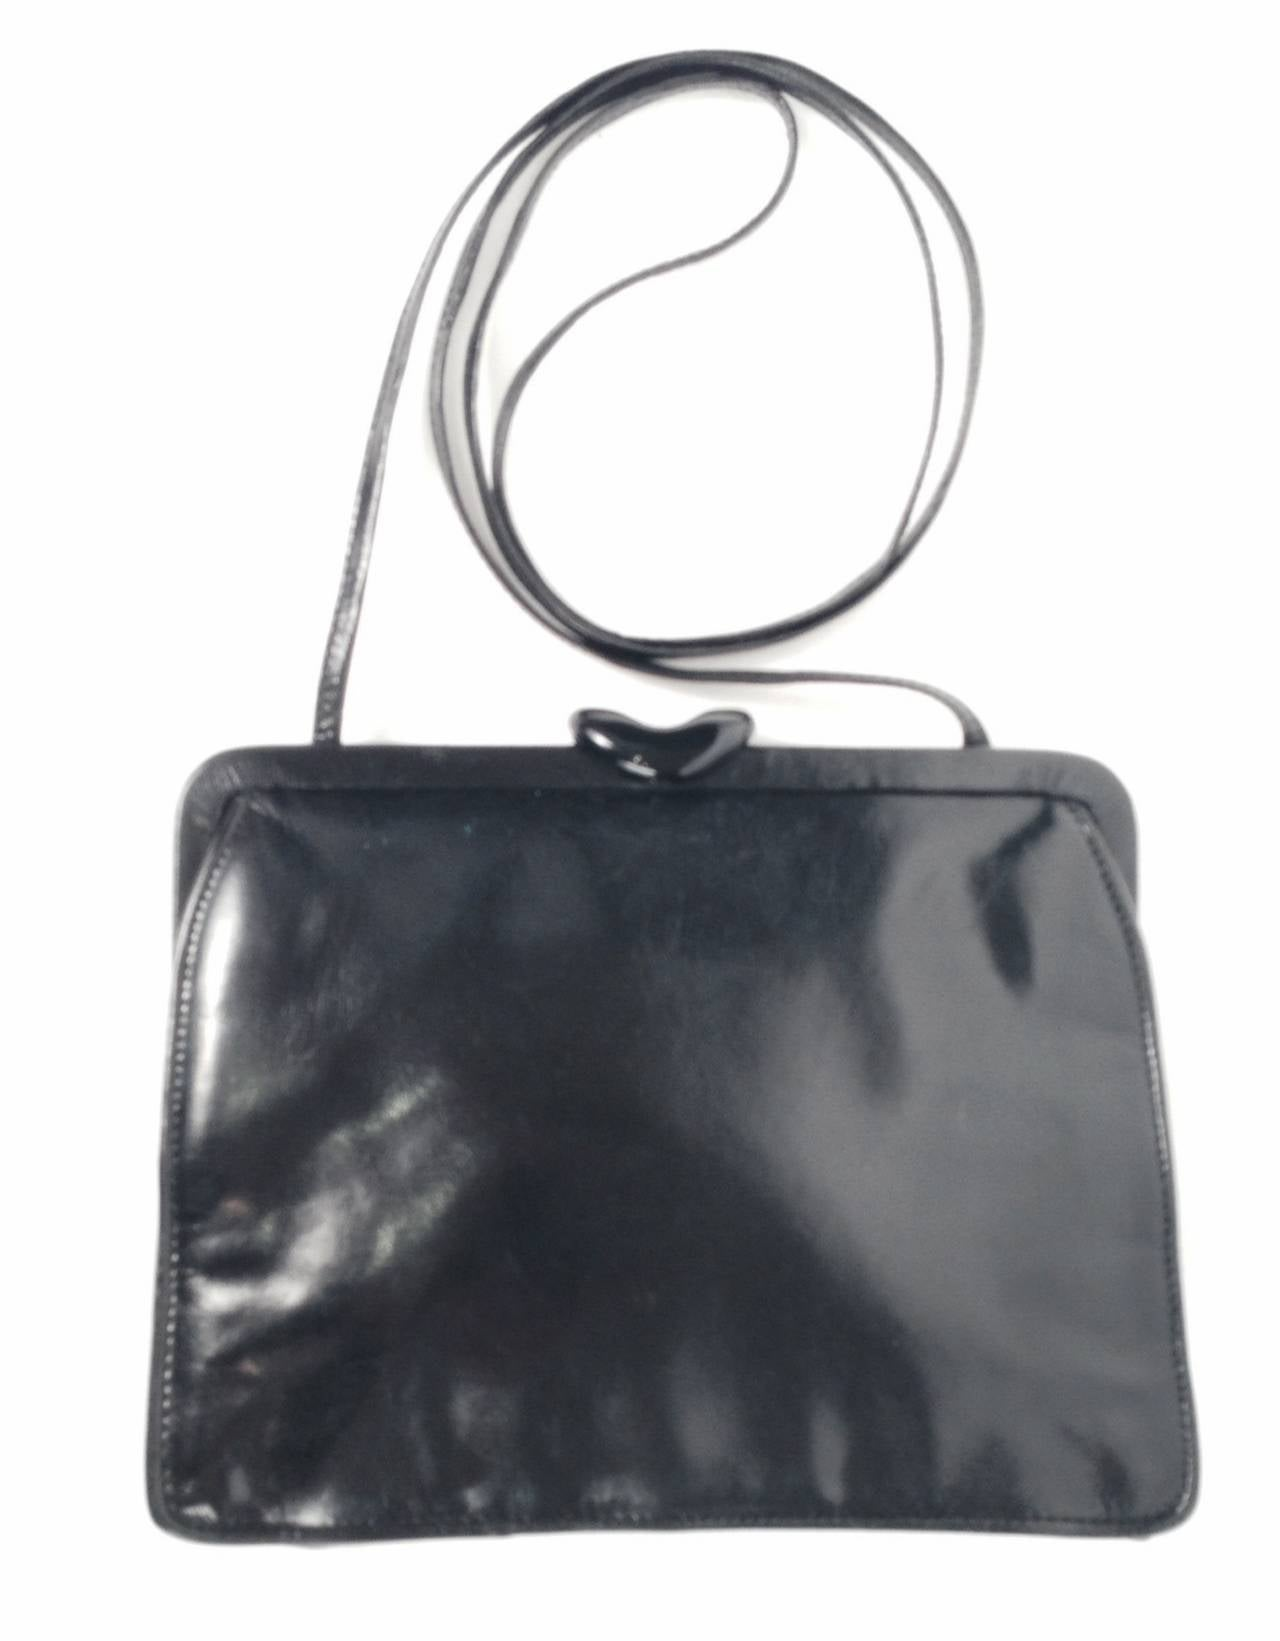 Live La Dolce Vita from day into evening carrying this vintage convertible clutch from Bottega Veneta!  Polished calfskin exterior and leather interior showcase the old-world craftsmanship that define Bottega Veneta.  Interior zippered pocket keeps